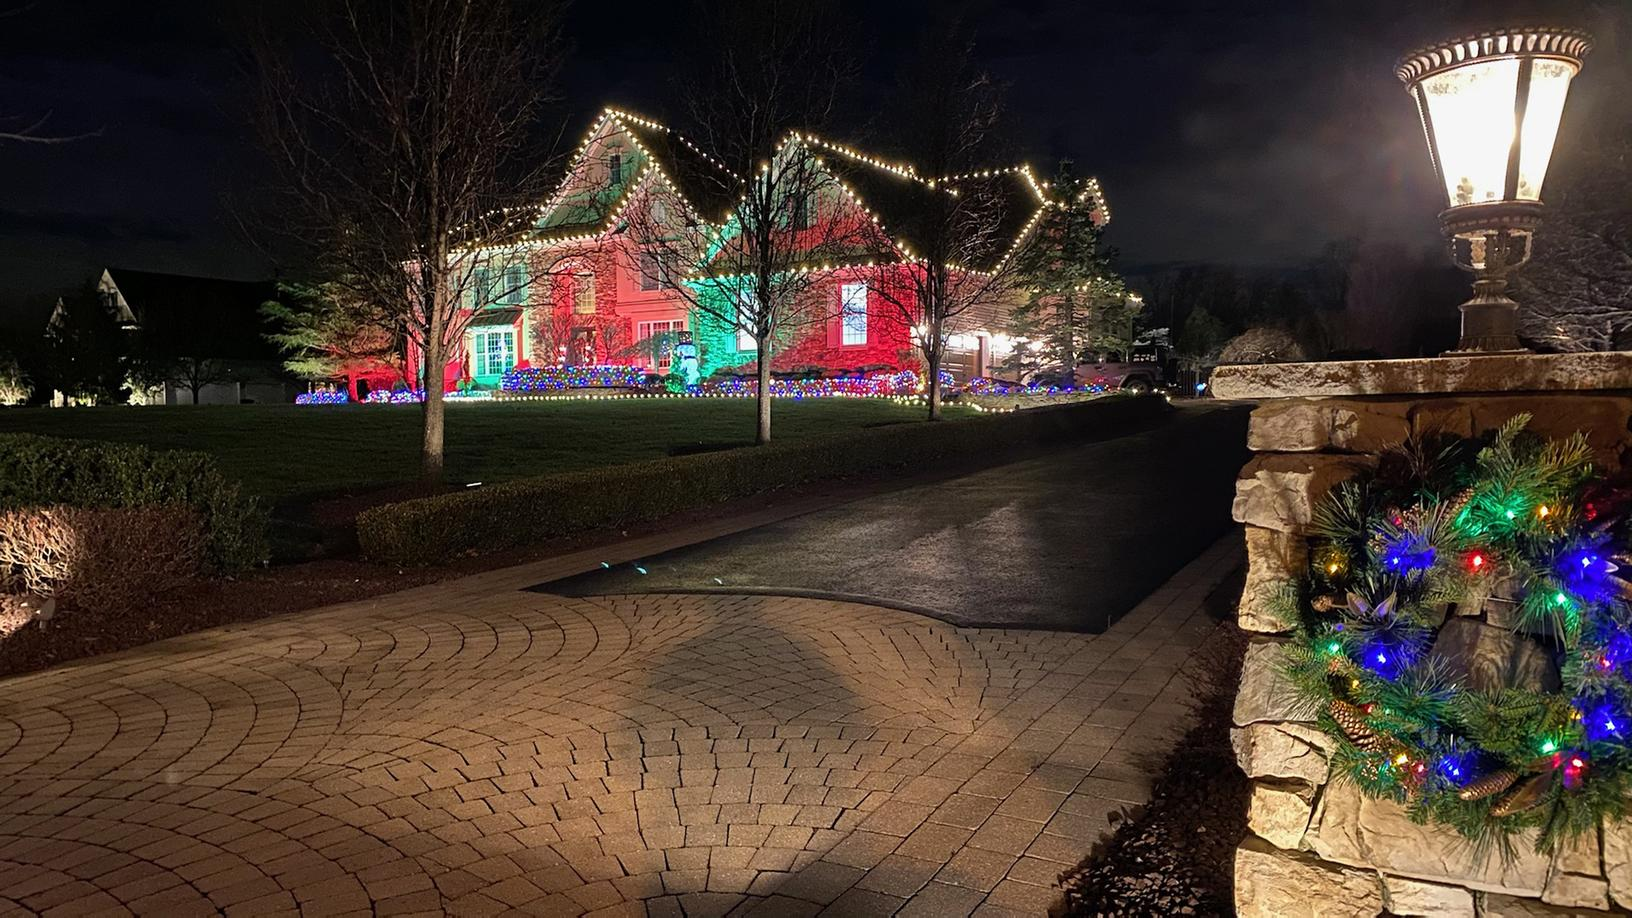 View from the Driveway